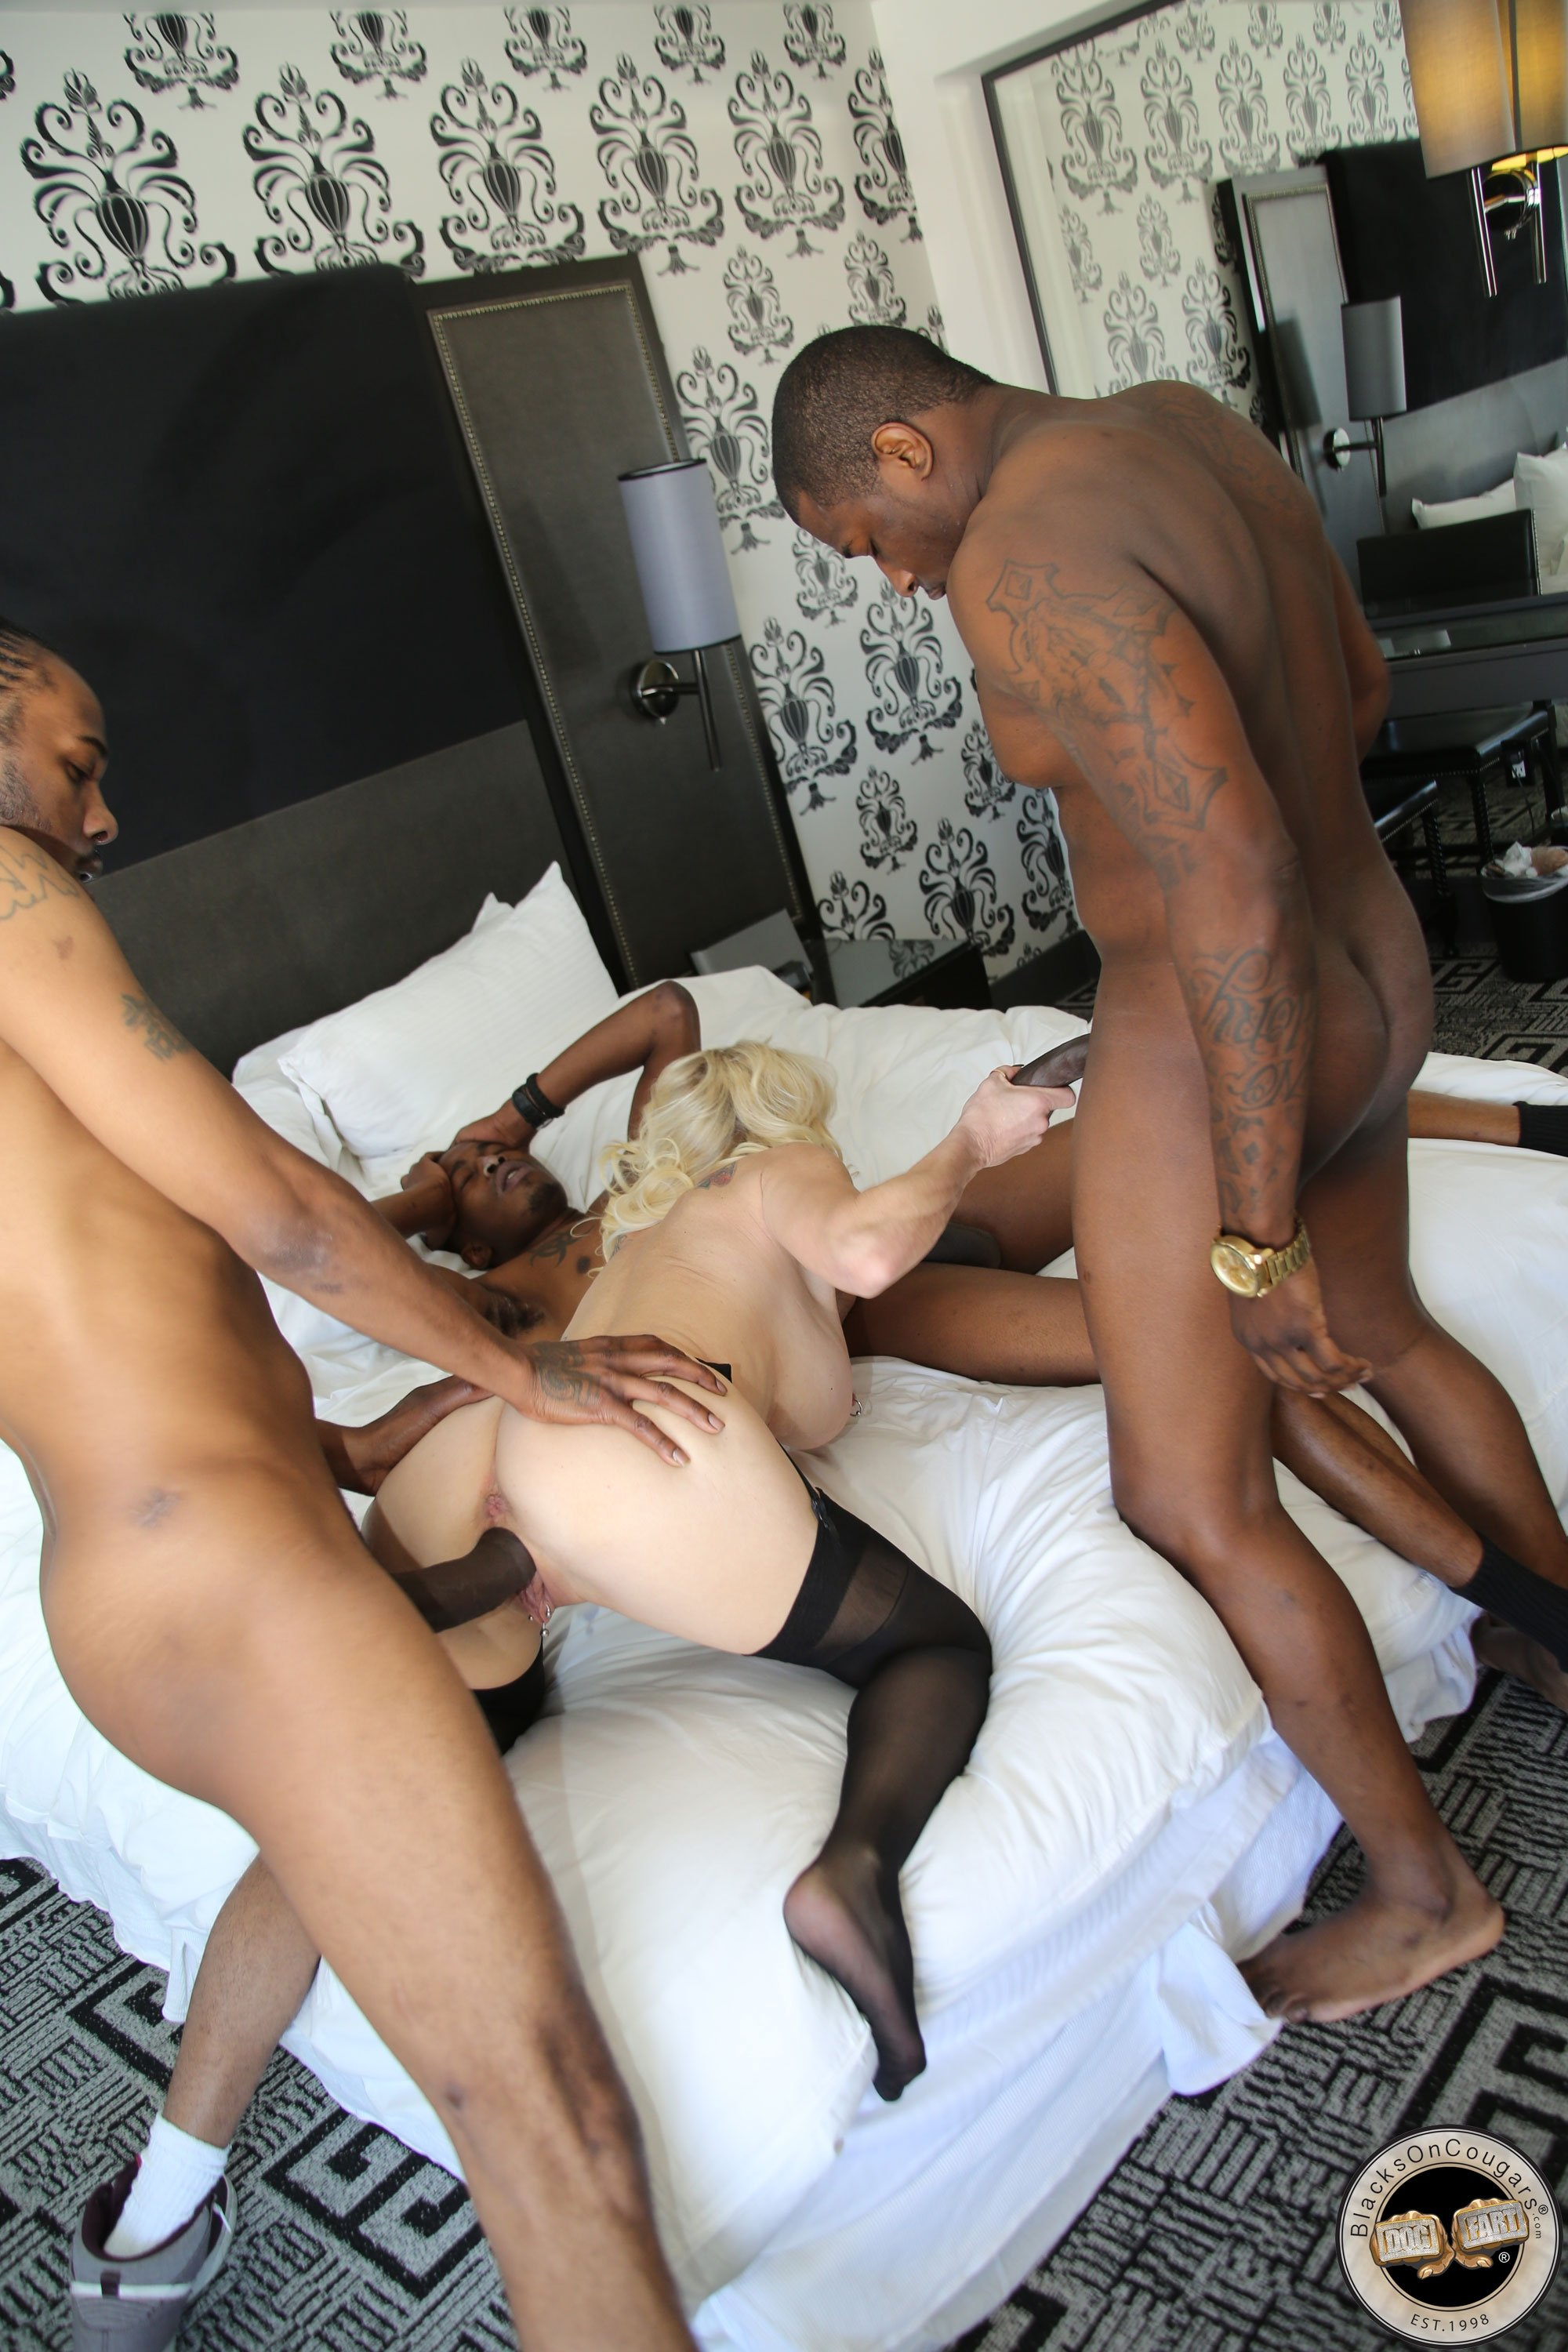 Wife does interracial video cuckold mature hd